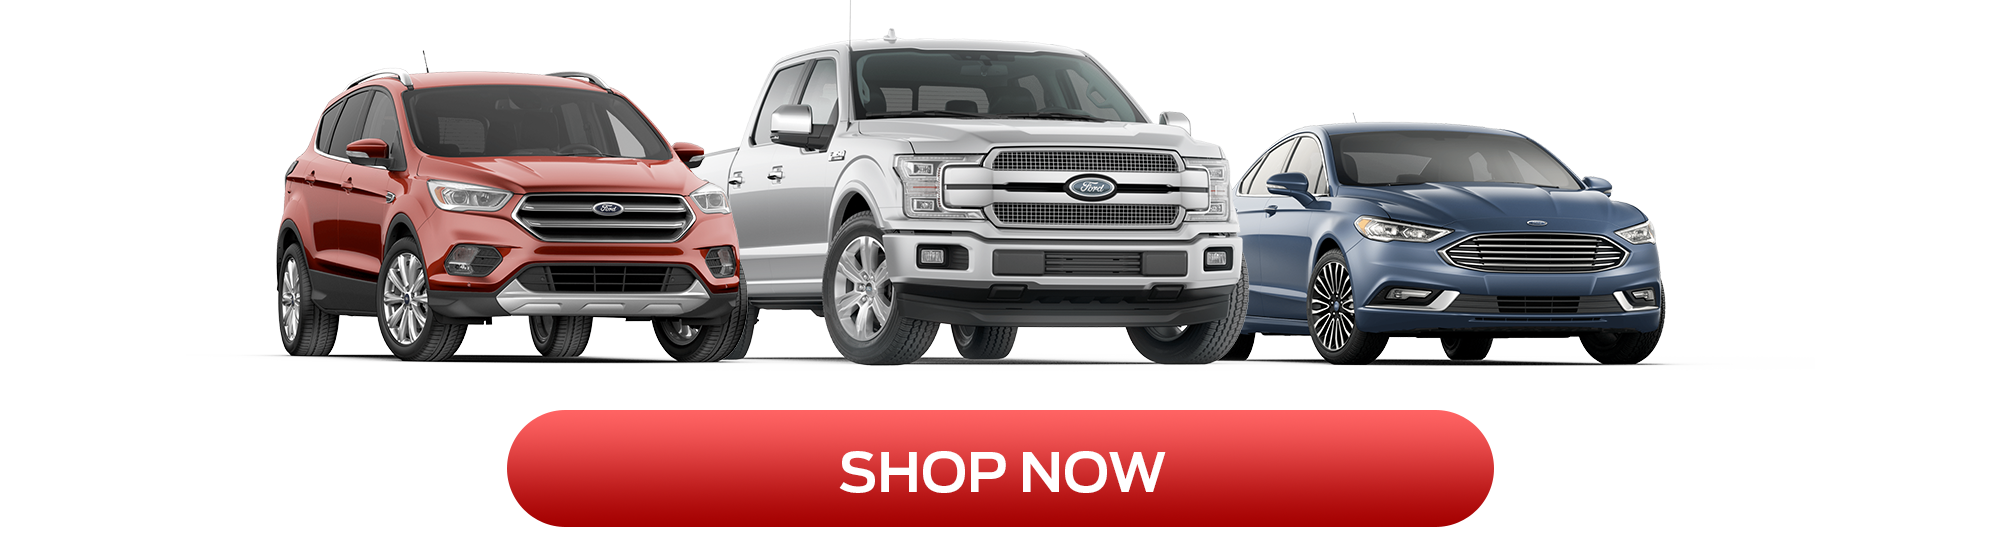 About Western Slope Ford | A Ford Dealership in Grand Junction